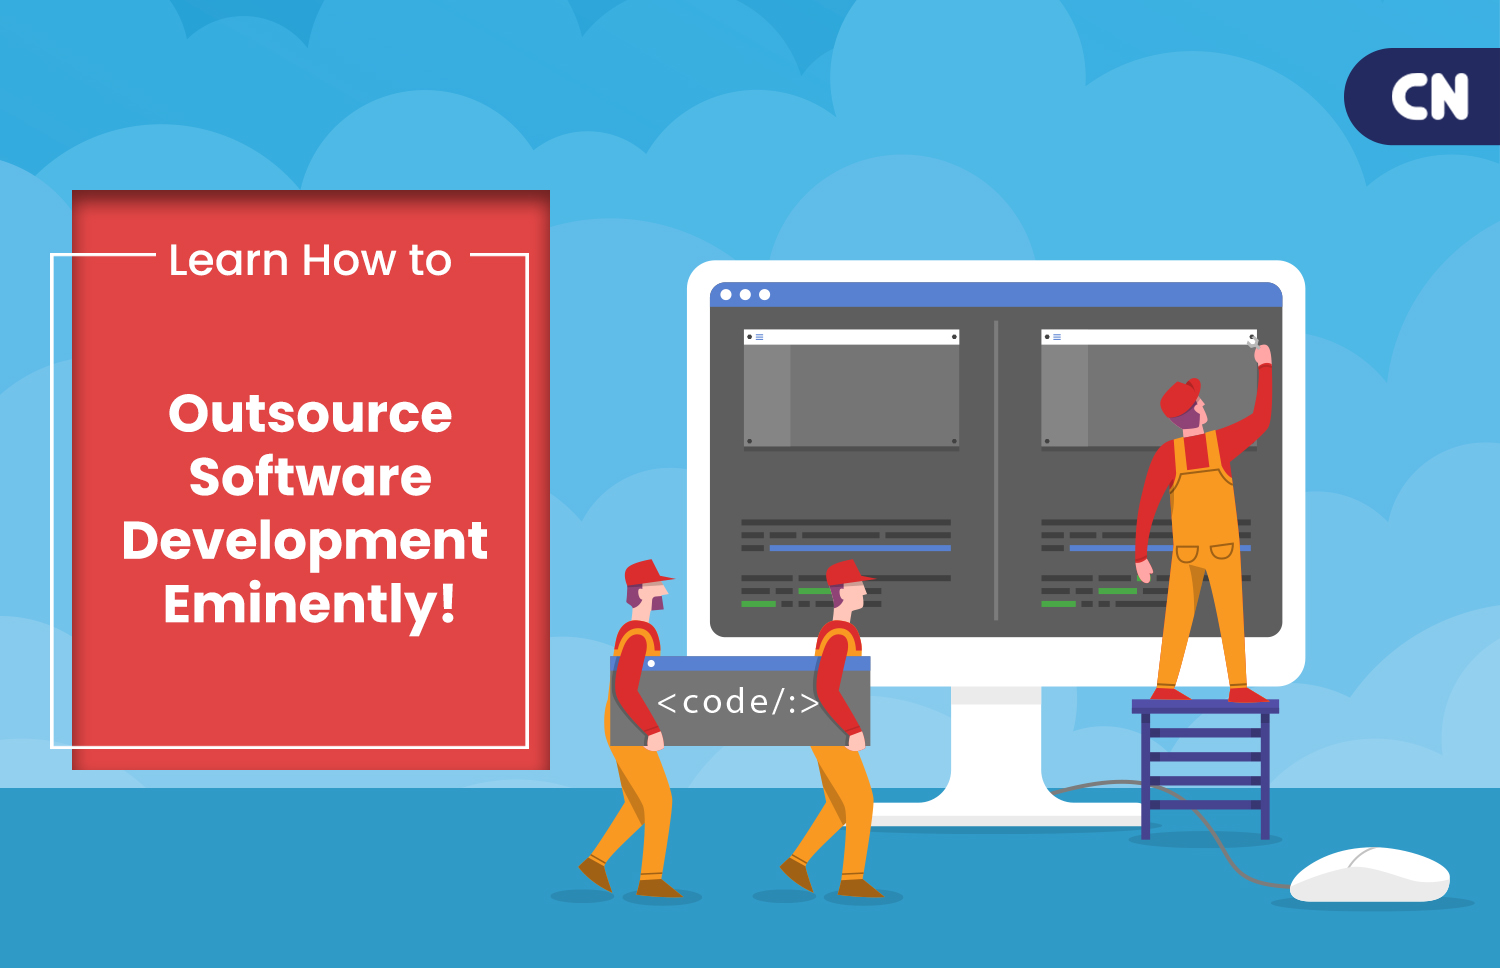 How to Outsource Software Development Eminently